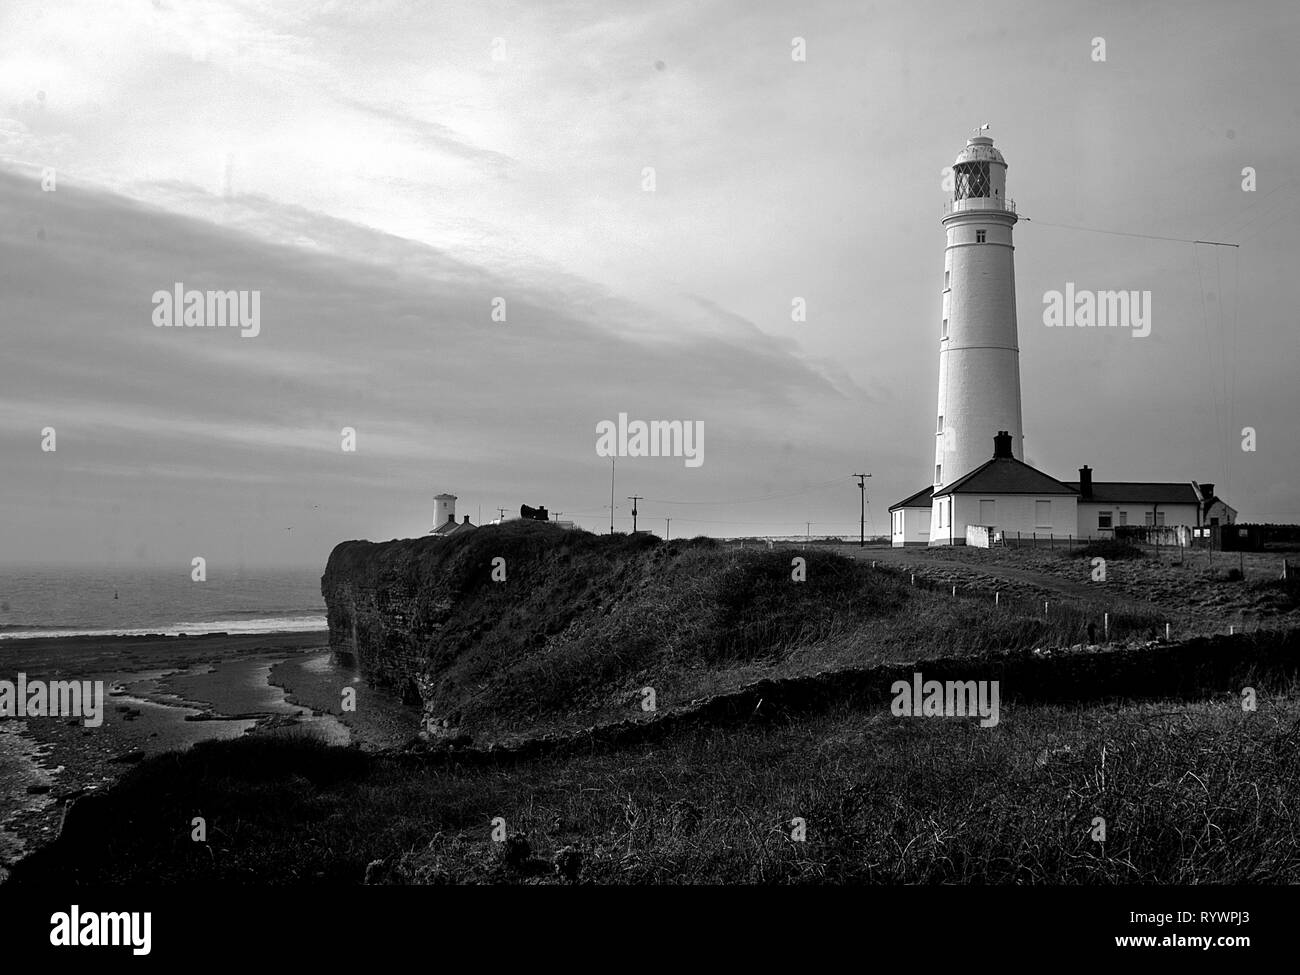 Nash Point Lighthouse situated on the Heritage Coast, South Wales, UK - Stock Image